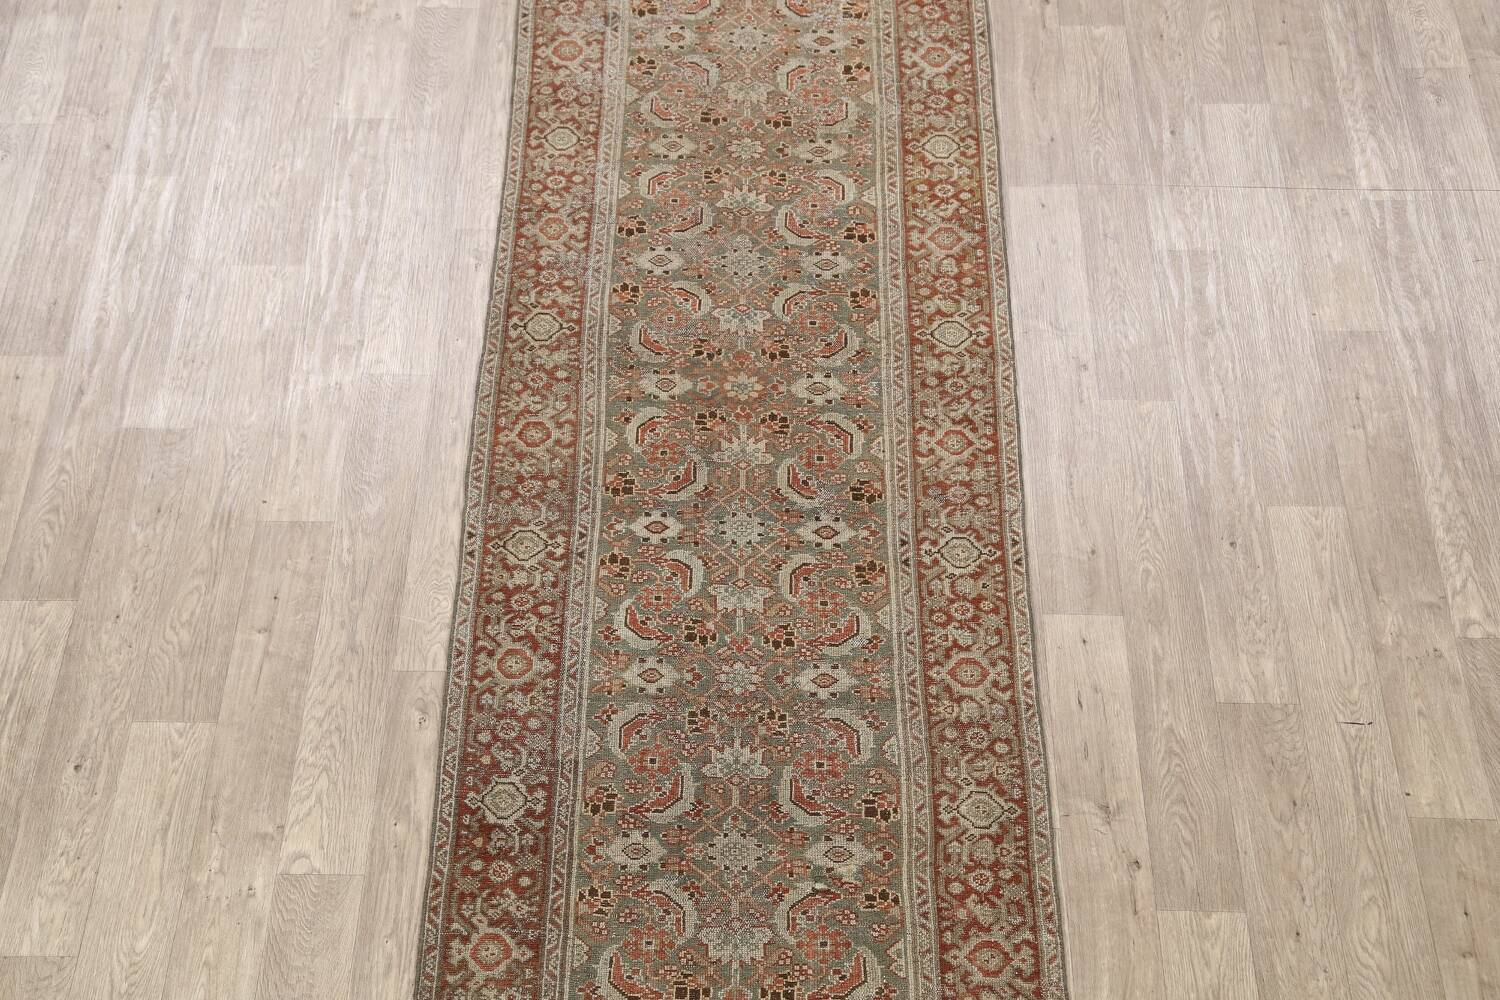 Pre-1900 Antique Malayer Persian Runner Rug 2x16 image 3